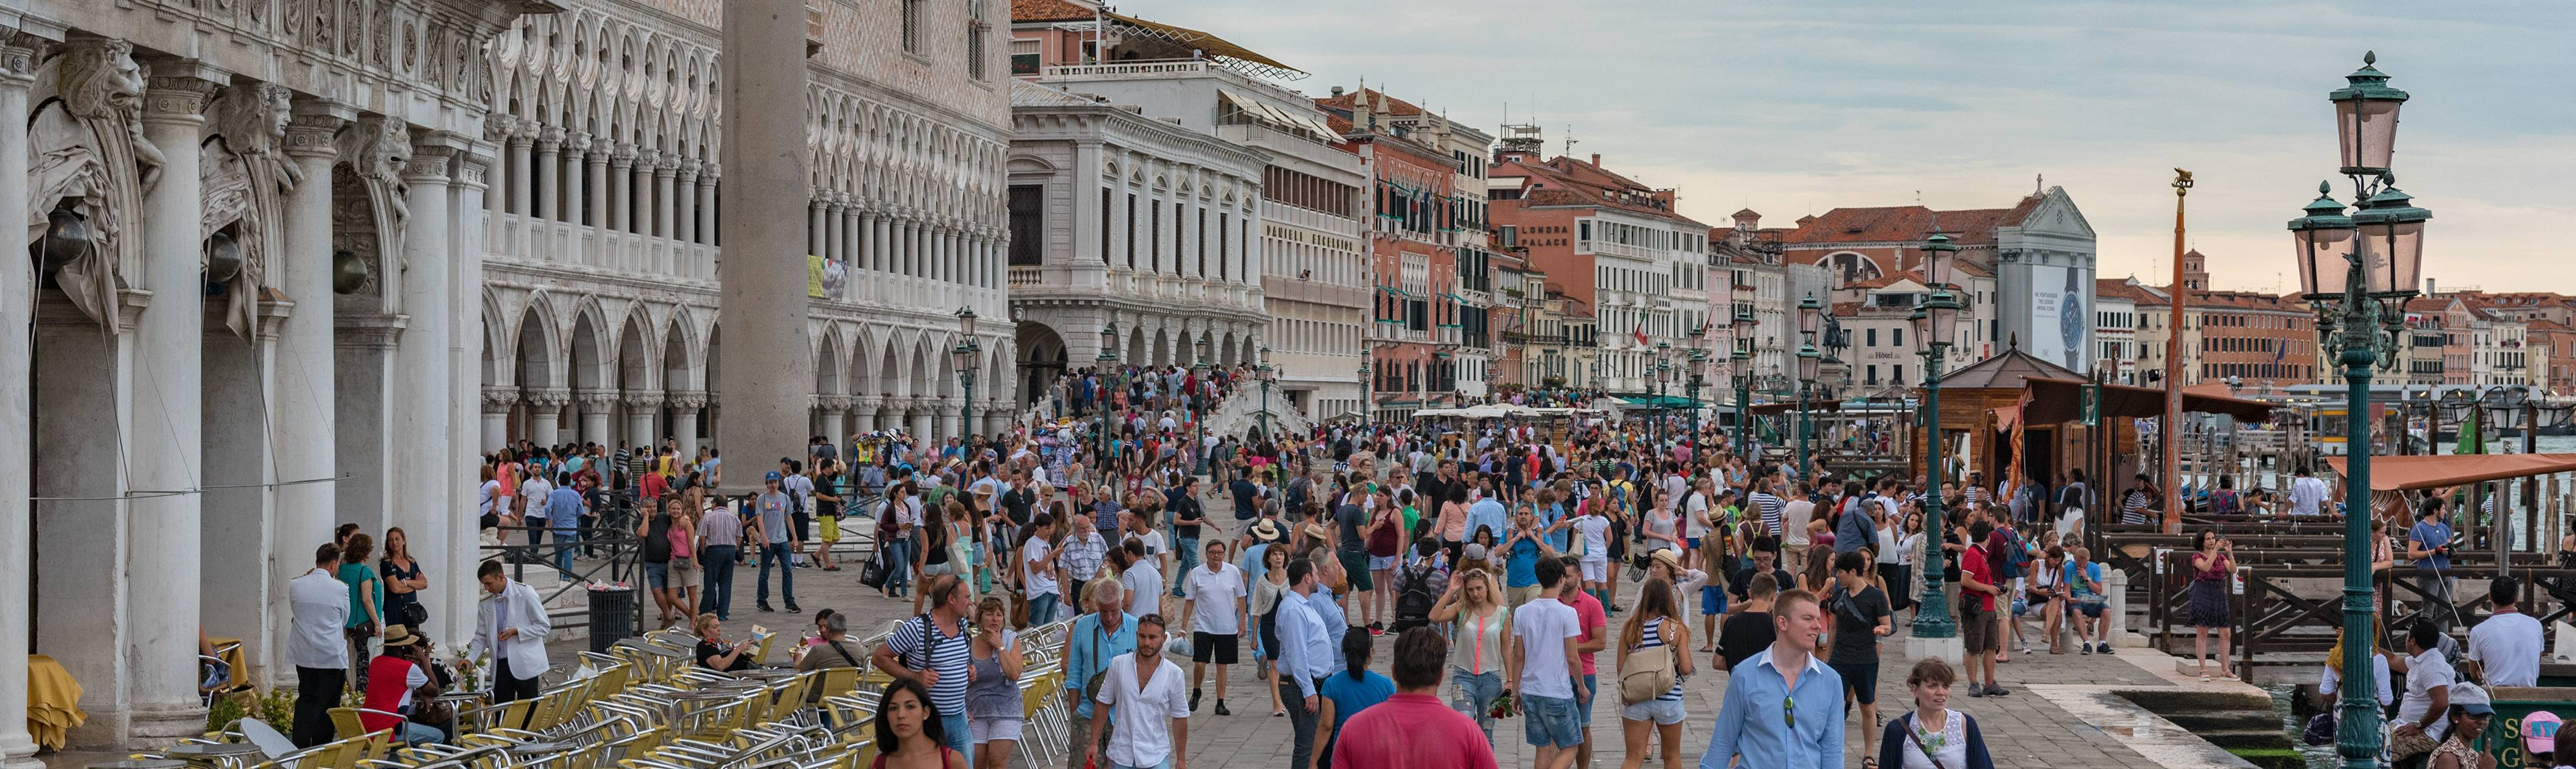 Visitors fill the area near the Piazza San Marco in Venice, Italy